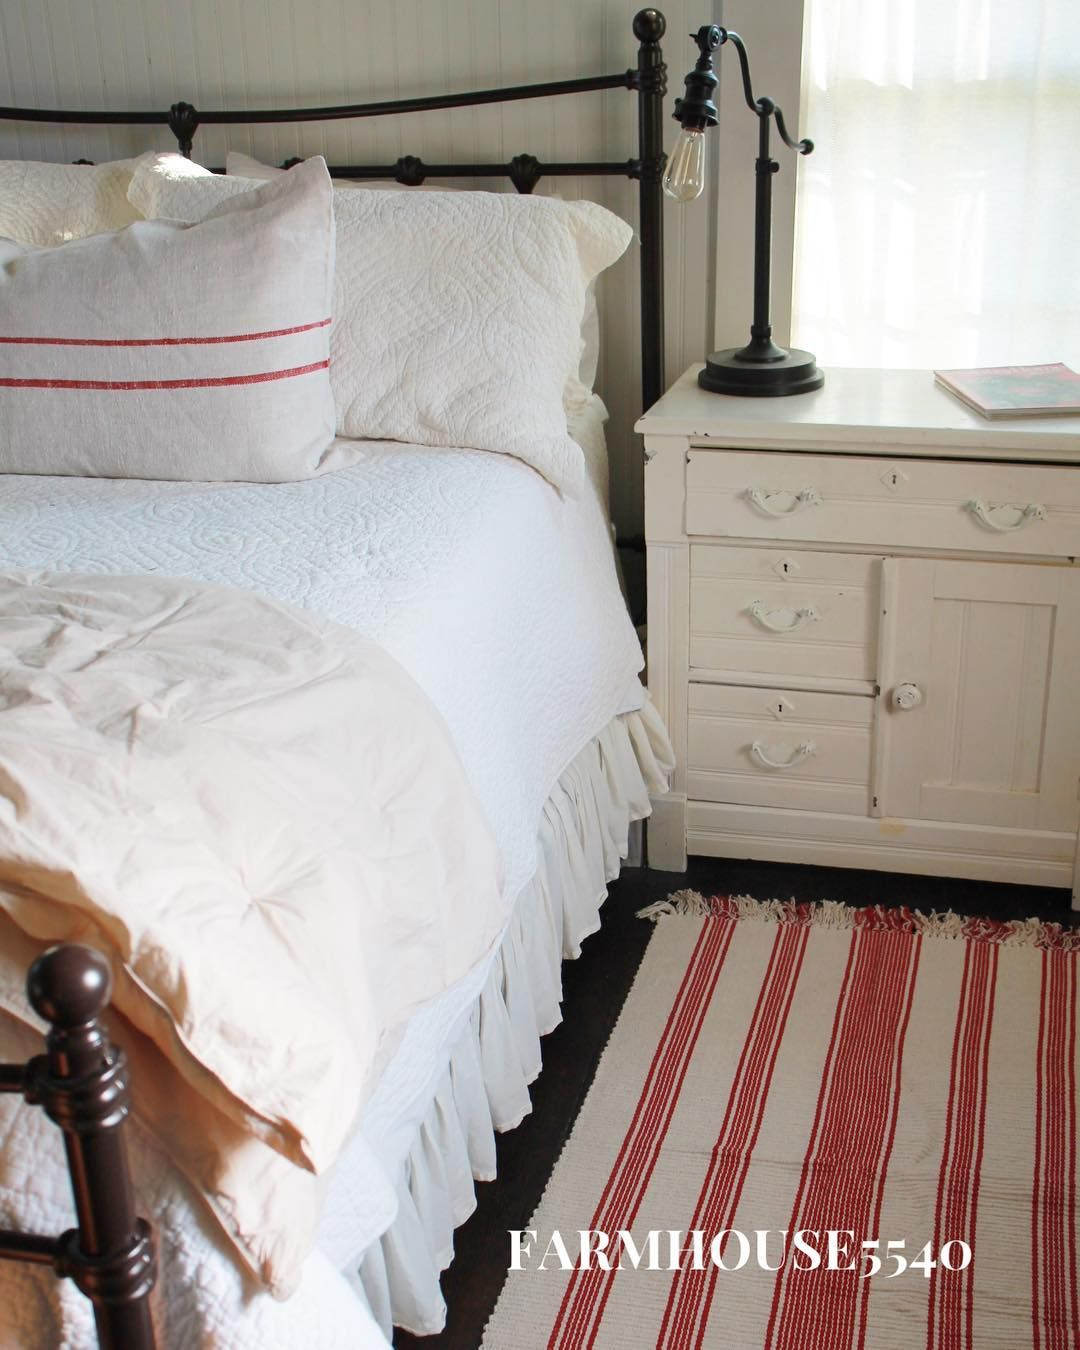 Farmhouse Christmas Bedroom with Red Textiles via @farmhouse5540